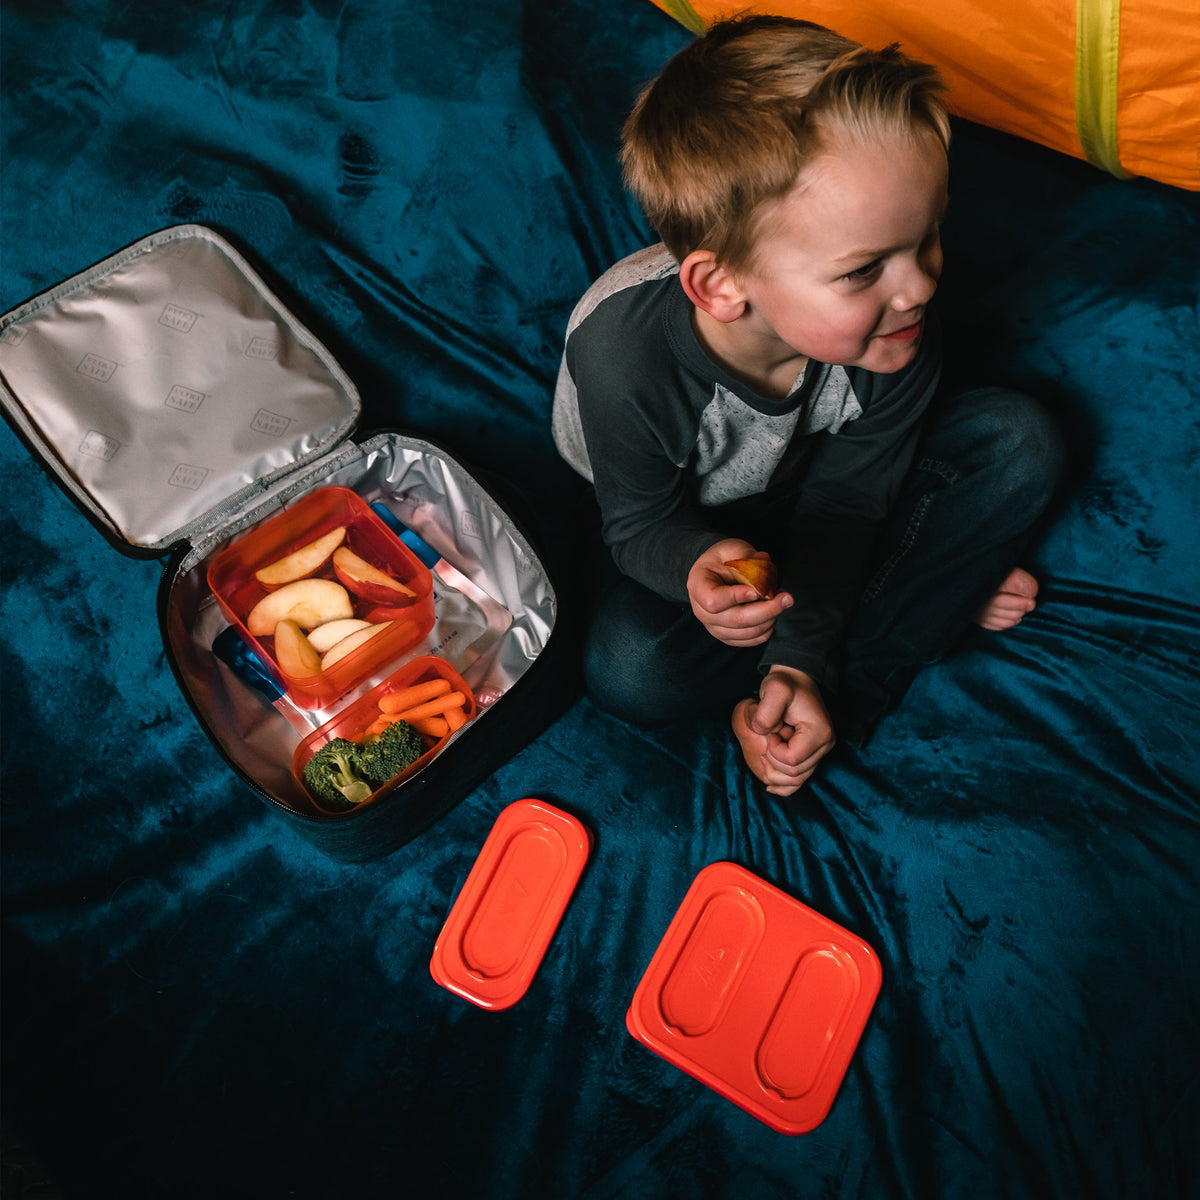 Arctic Zone® Classics Lunch Box - Blue - Lifestyle, Little boy having lunch on a blanket